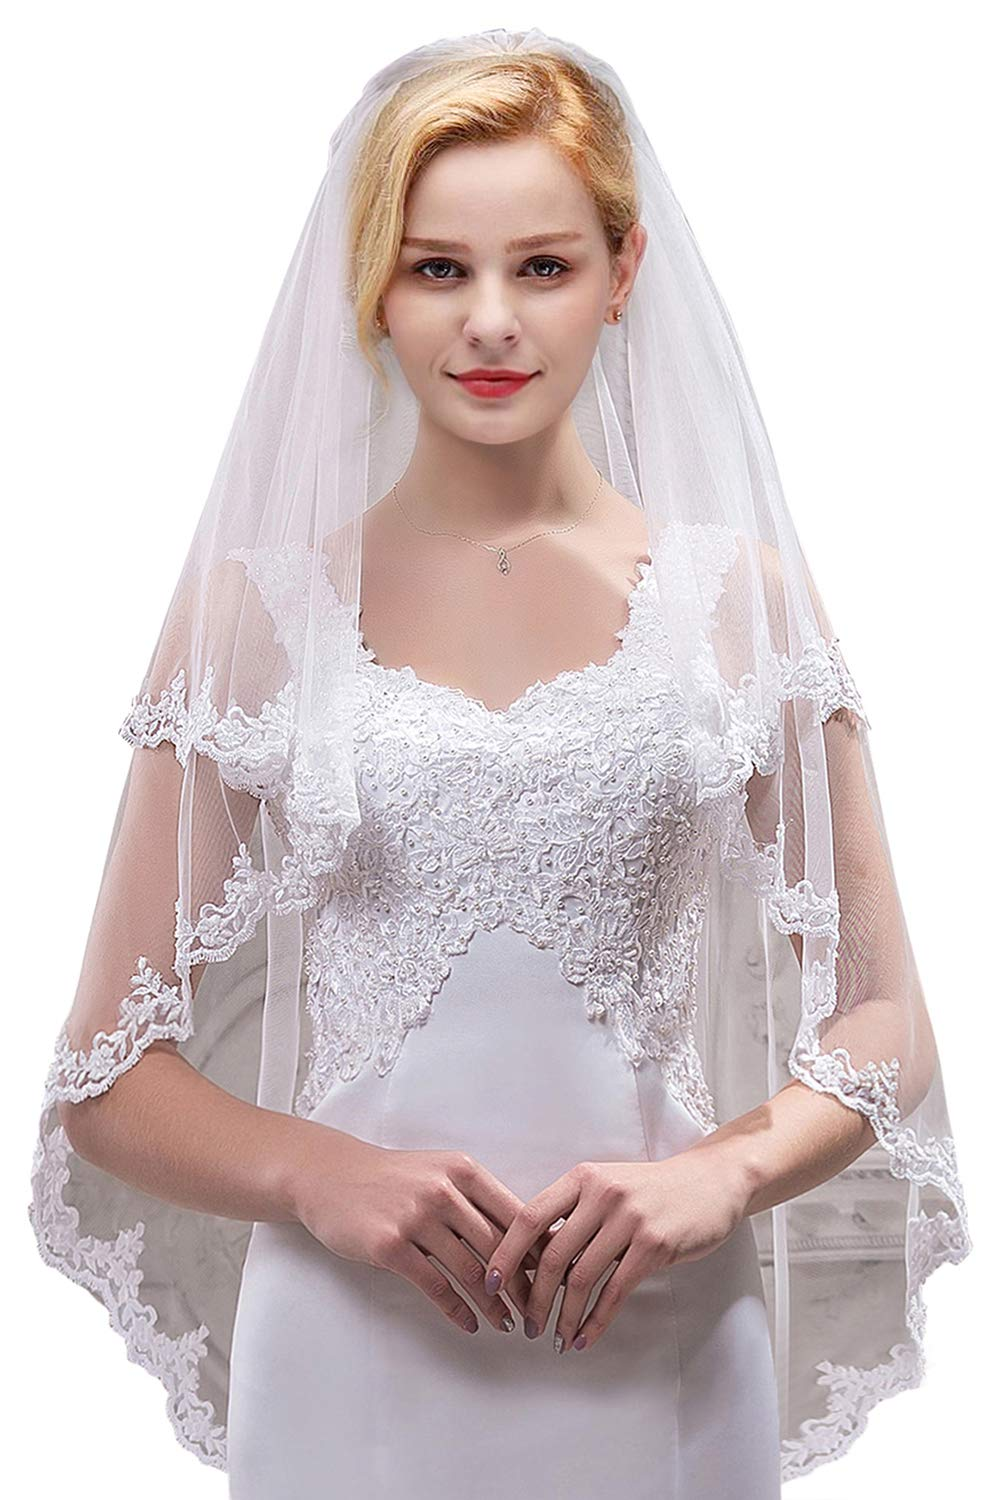 Women's Bridal Tulle Veils with Comb Lace Edge Wedding Veils for Bride,White by MisShow (Image #1)